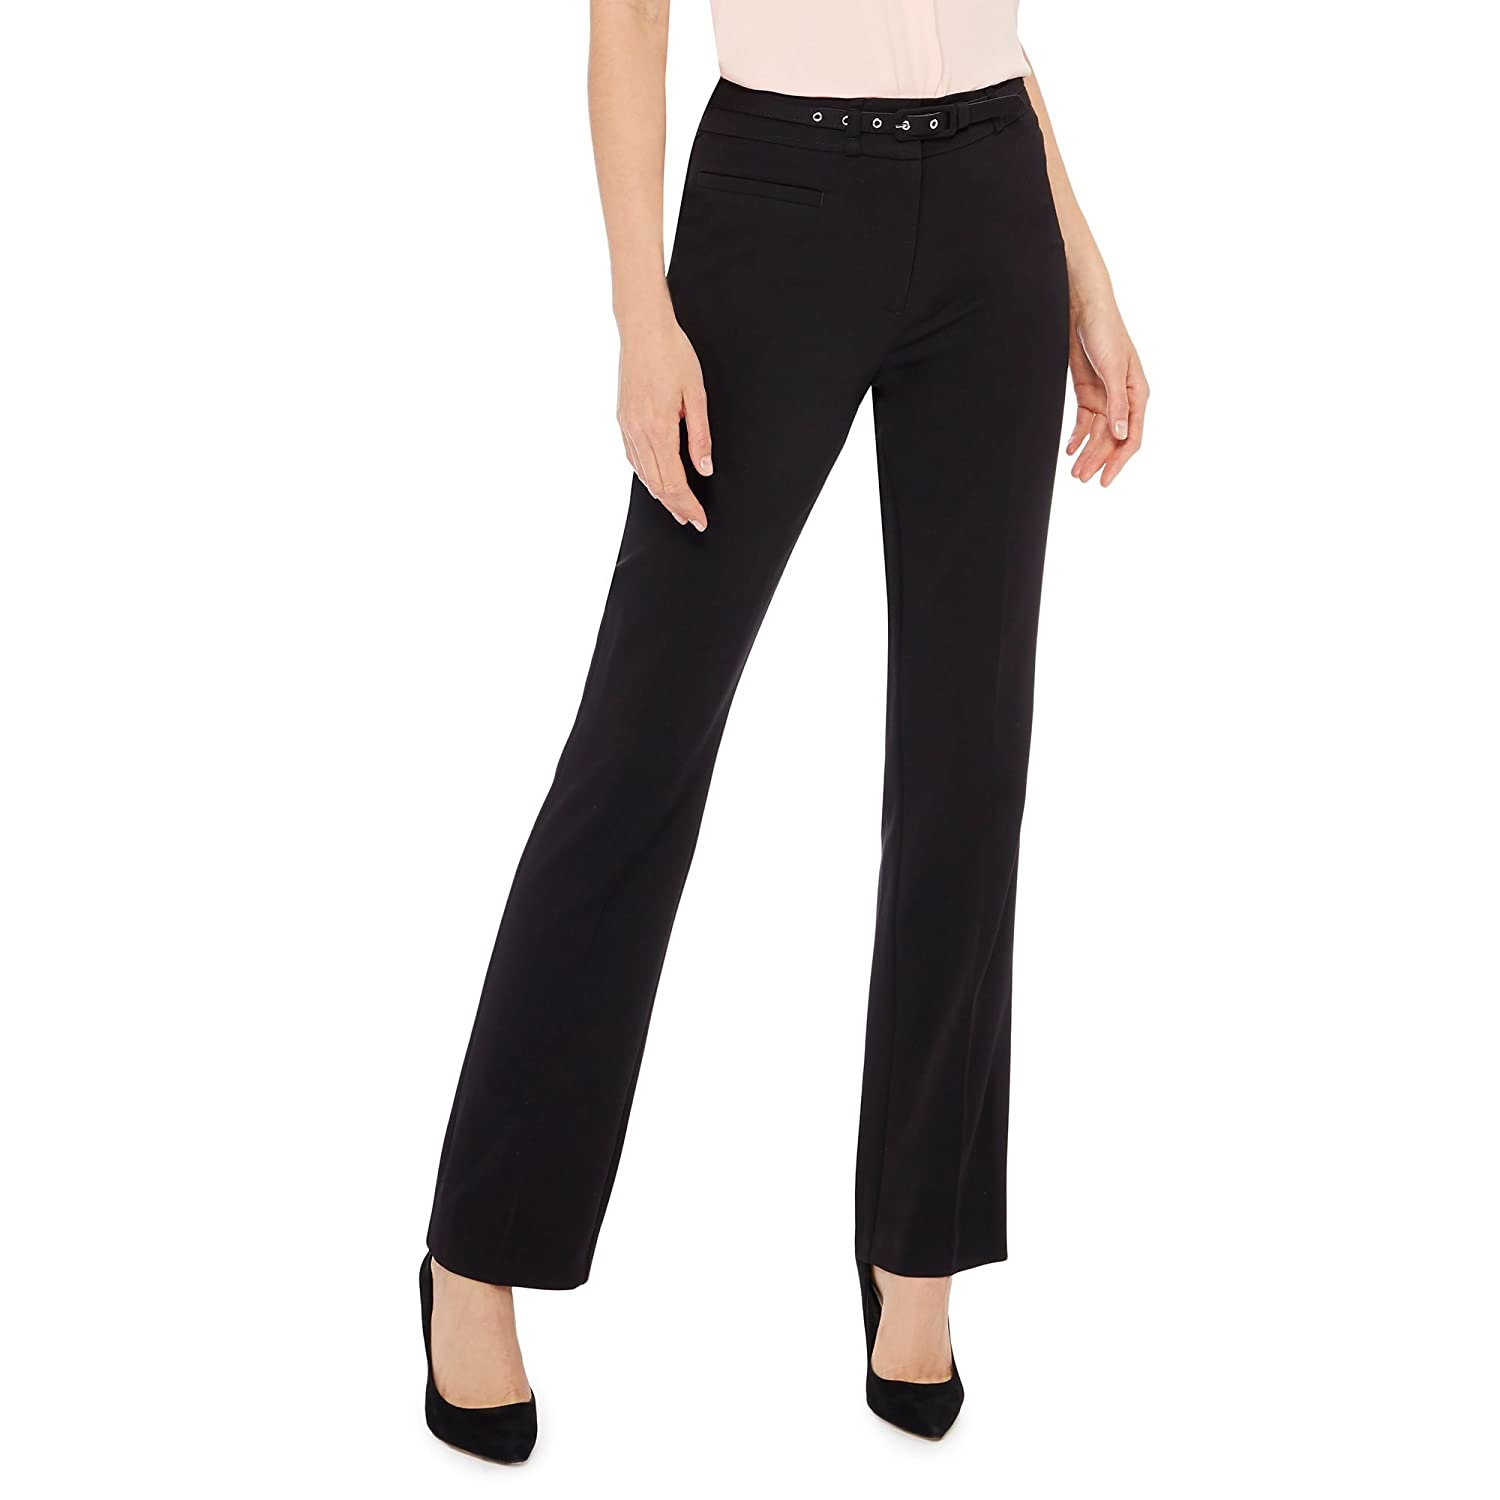 Debenhams The Collection Womens Black Straight Leg Suit Trousers